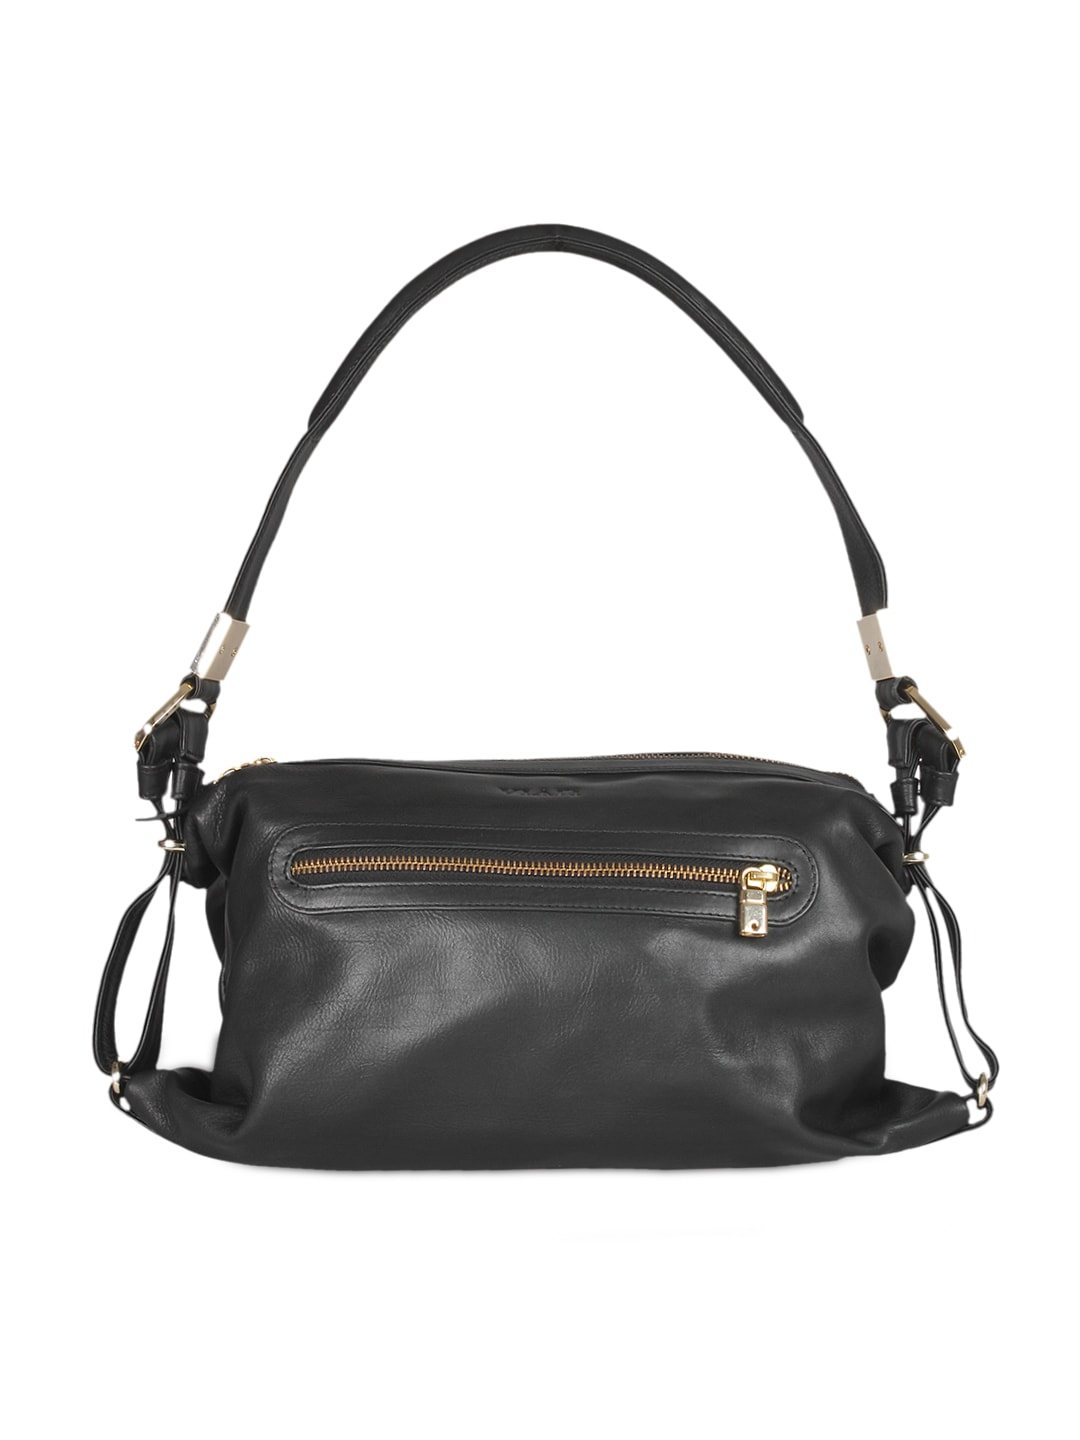 VIARI Black CANNES Leather Handbag